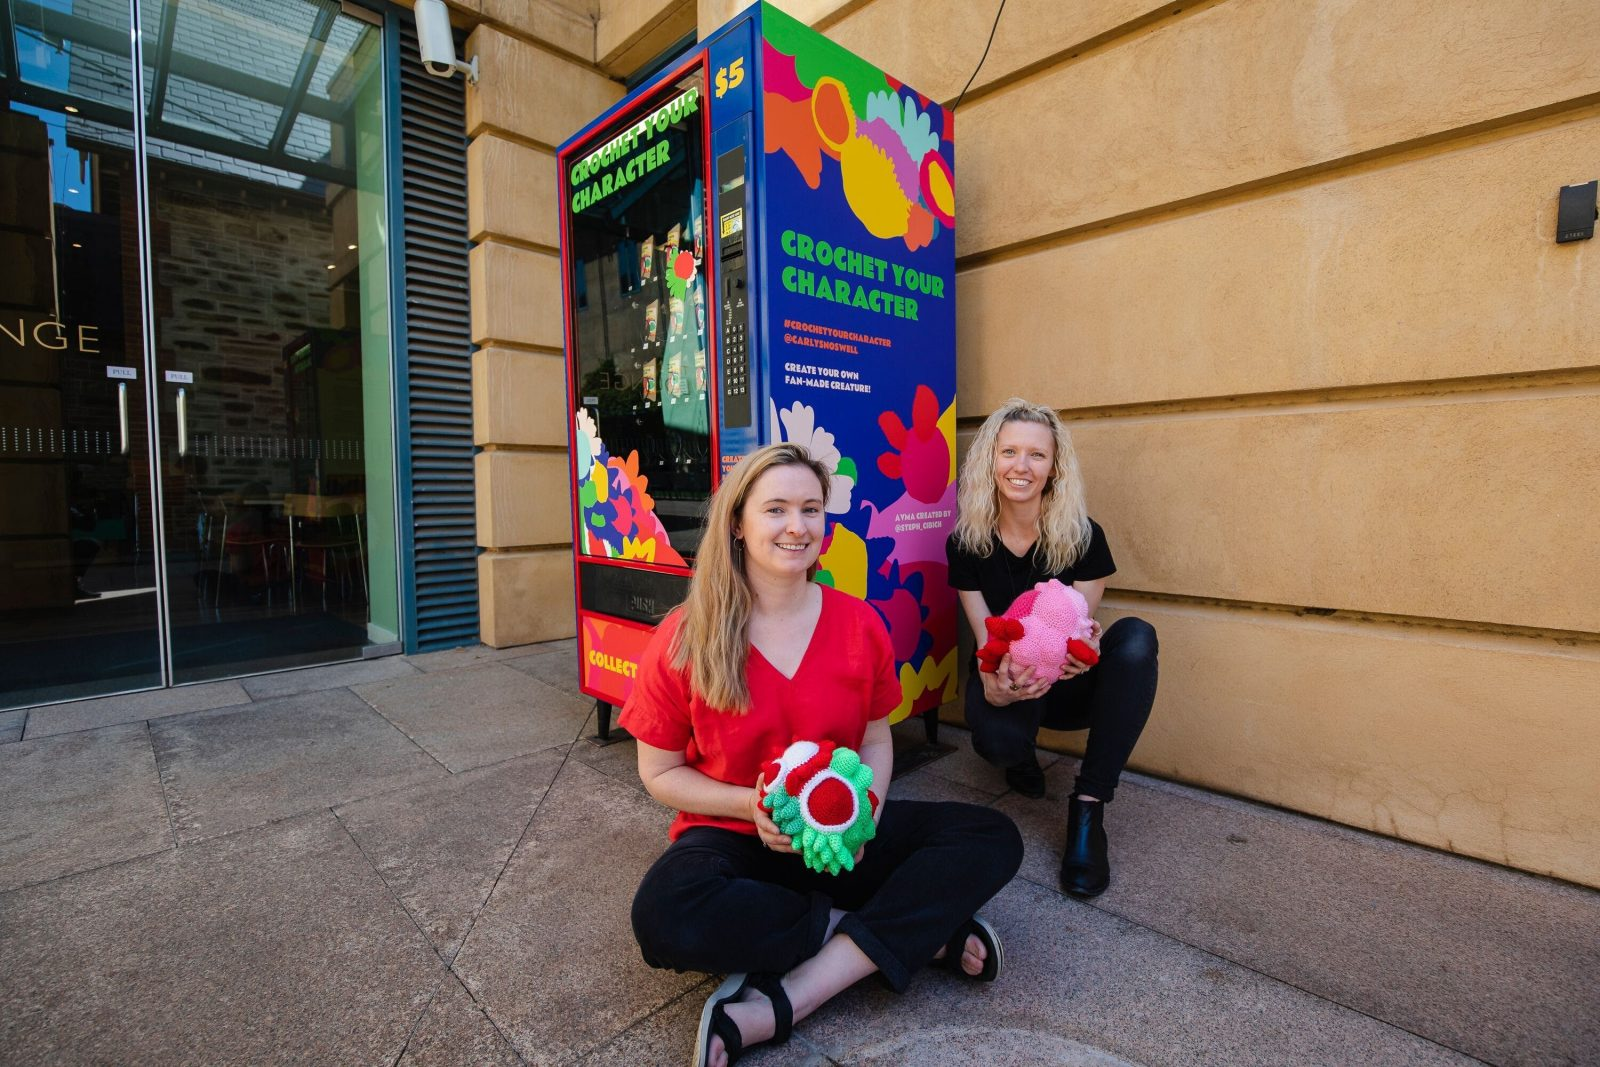 AVMA presents 'the Adelaide Art Vending Machine' feat.Carly Snoswell. Photo by Rosina Possingham.